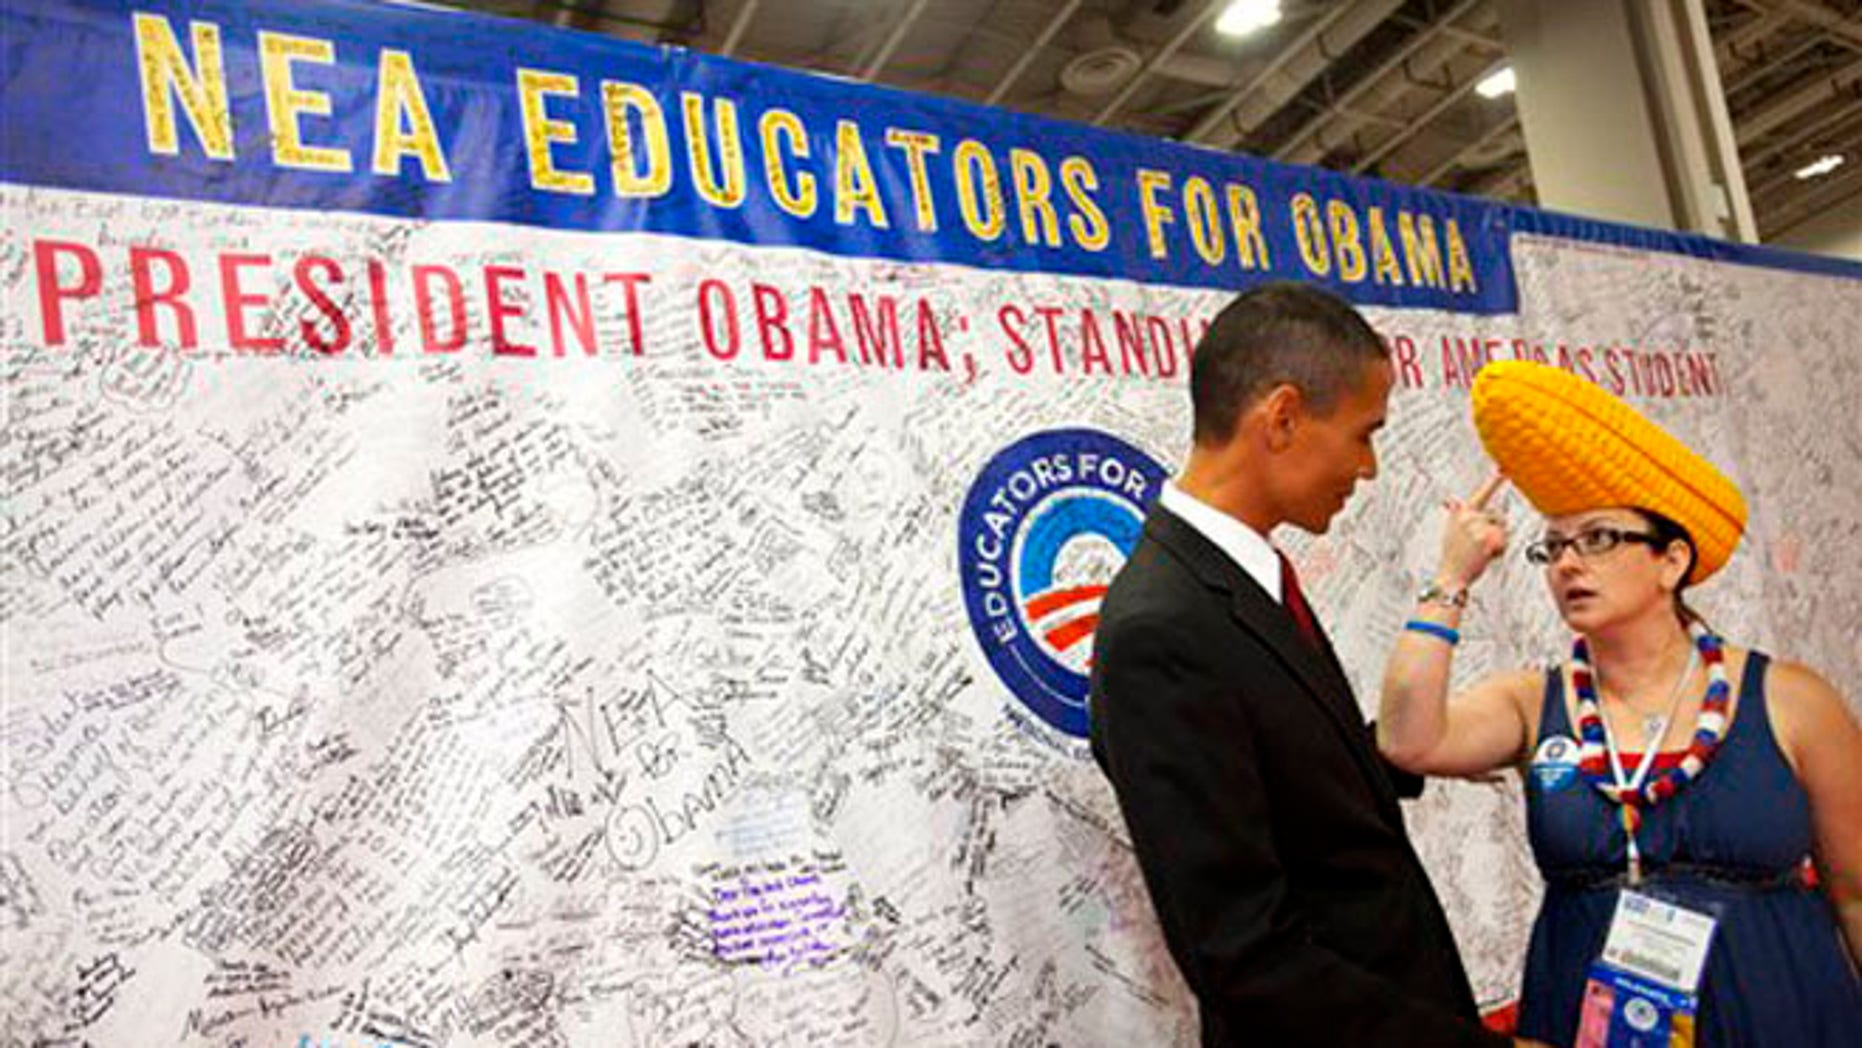 July 5, 2012: A teacher from Omaha, Nebraska, right, explains her corn hat to a President Obama impersonator and teacher in front of a banner of signatures in support of Obama at the National Education Association annual convention in Washington.